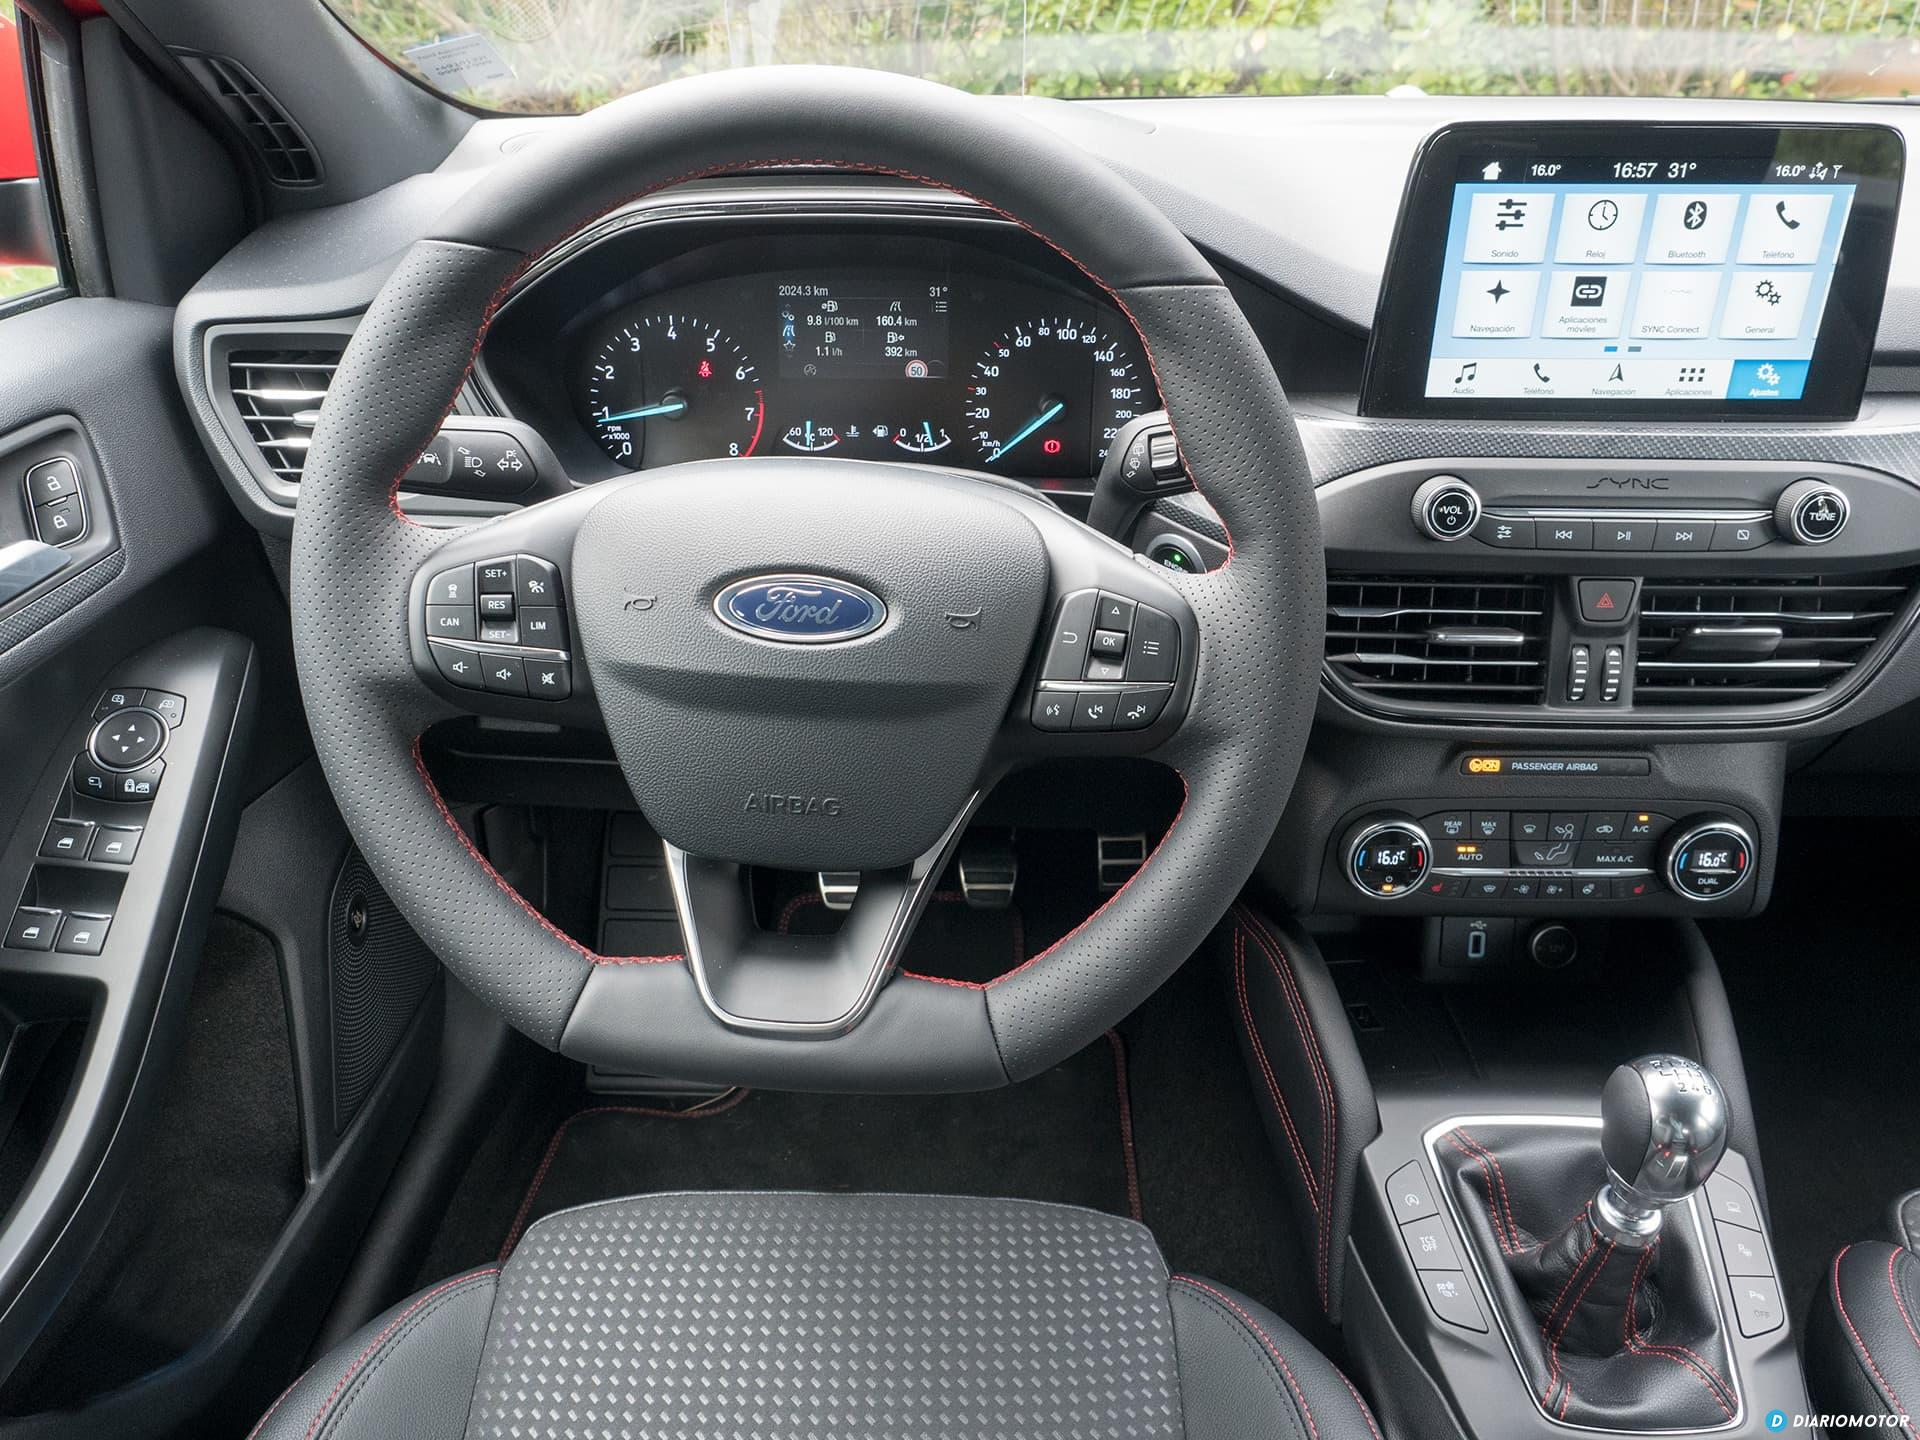 Ford Focus 2018 Interior 00010